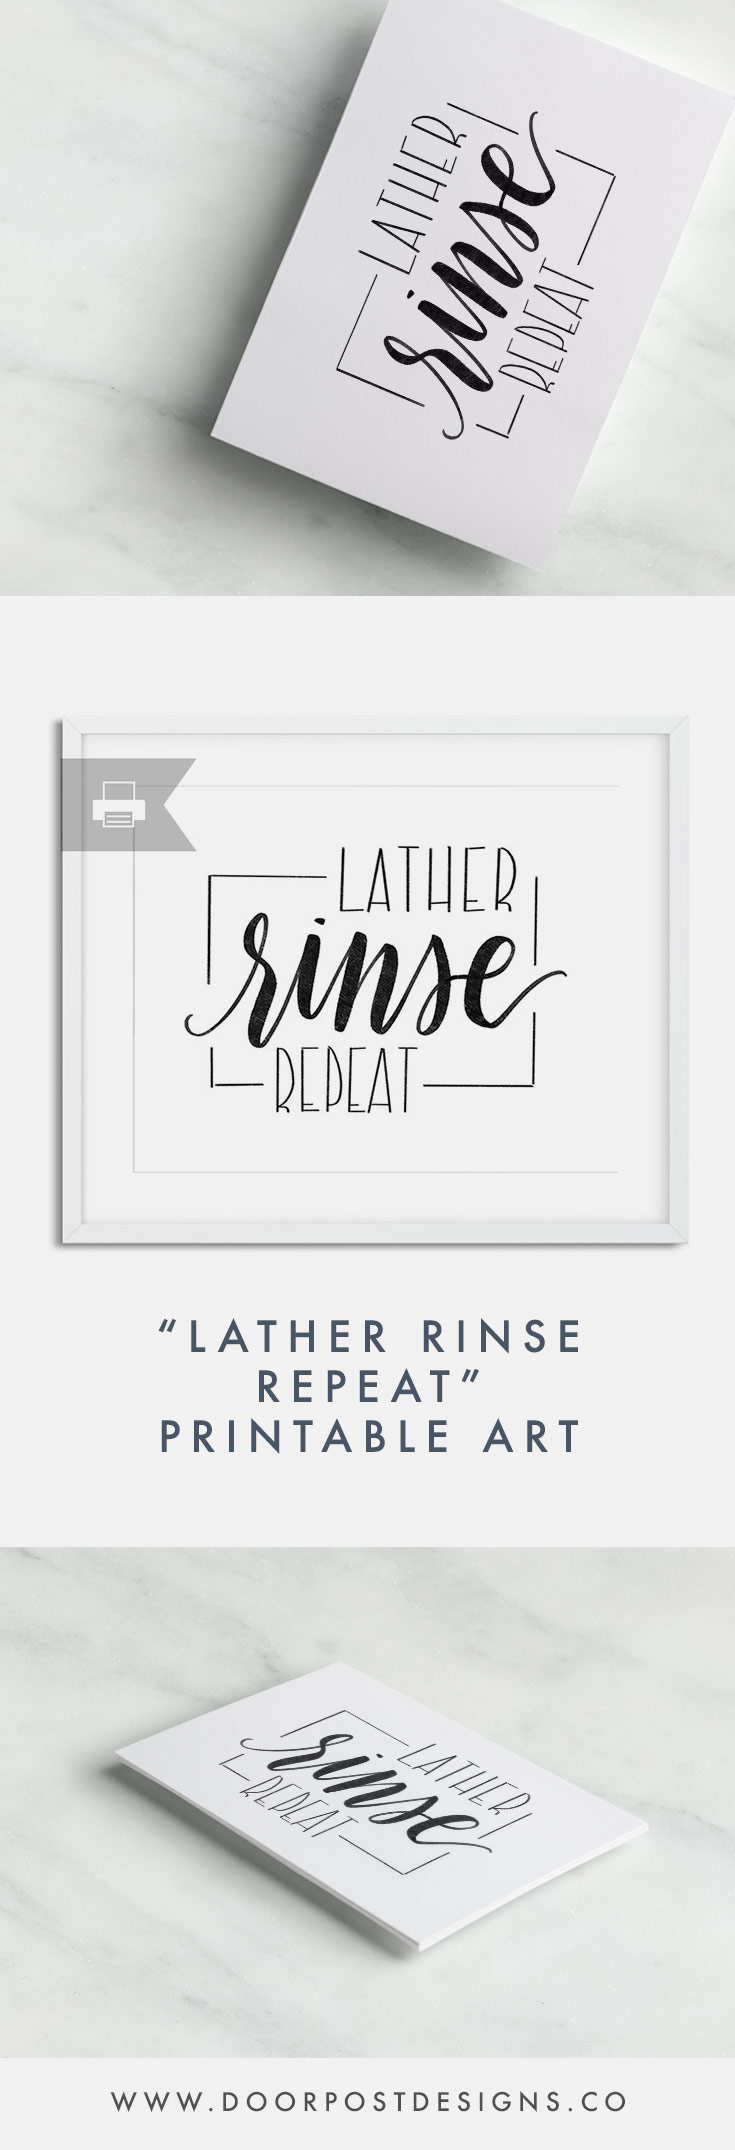 """Lather, Rinse, Repeat!"" Bathroom Decor 